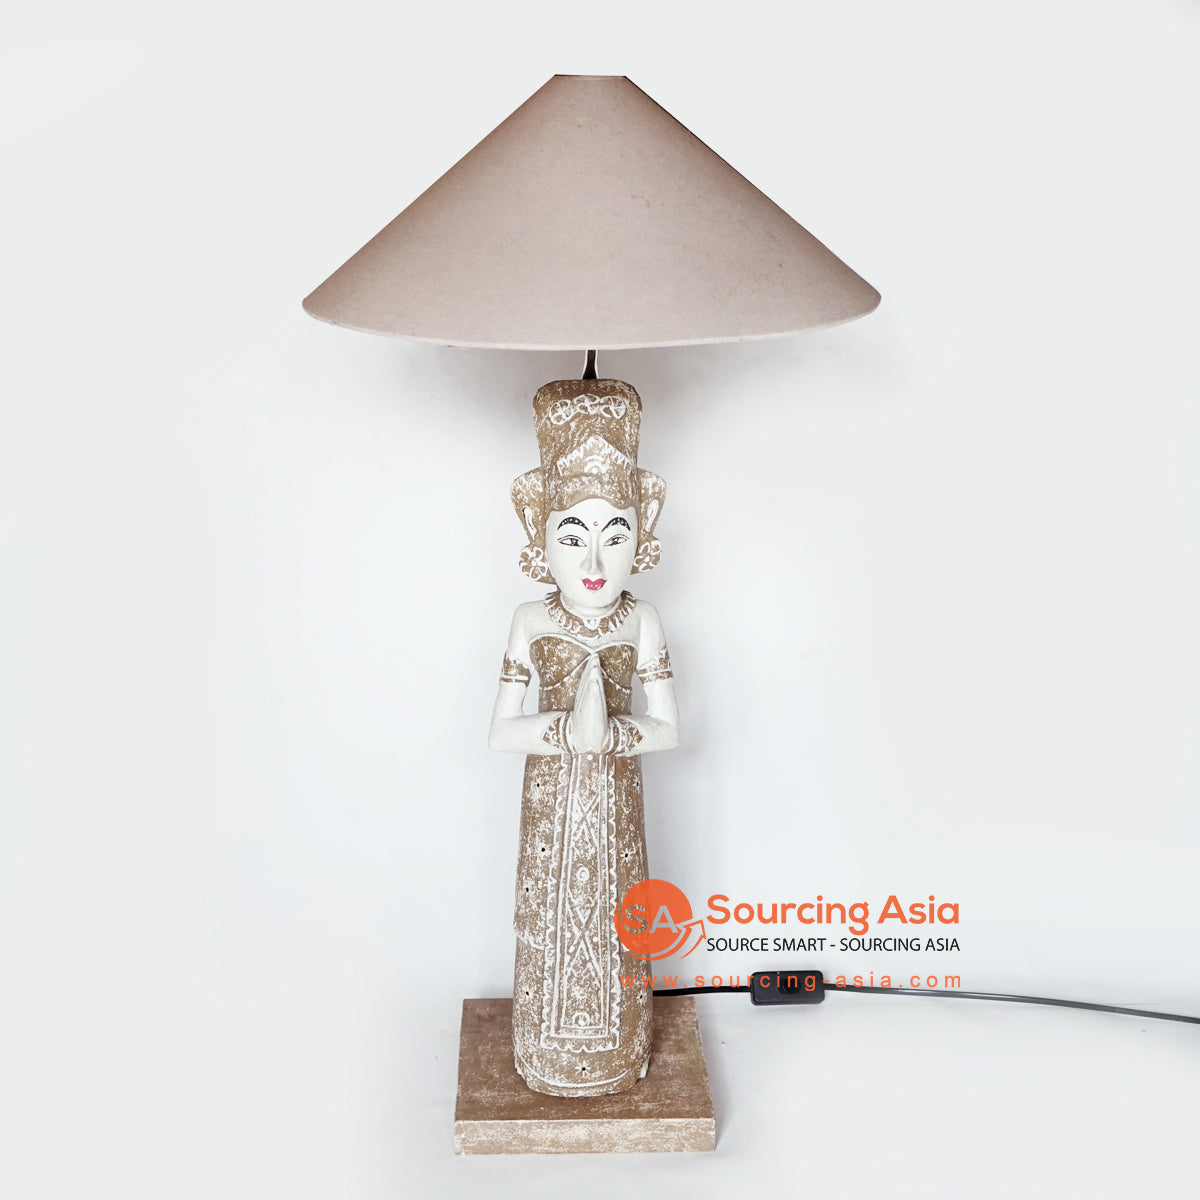 MANC090 STANDING LAMP WITH BALINESE WOMEN STATUE